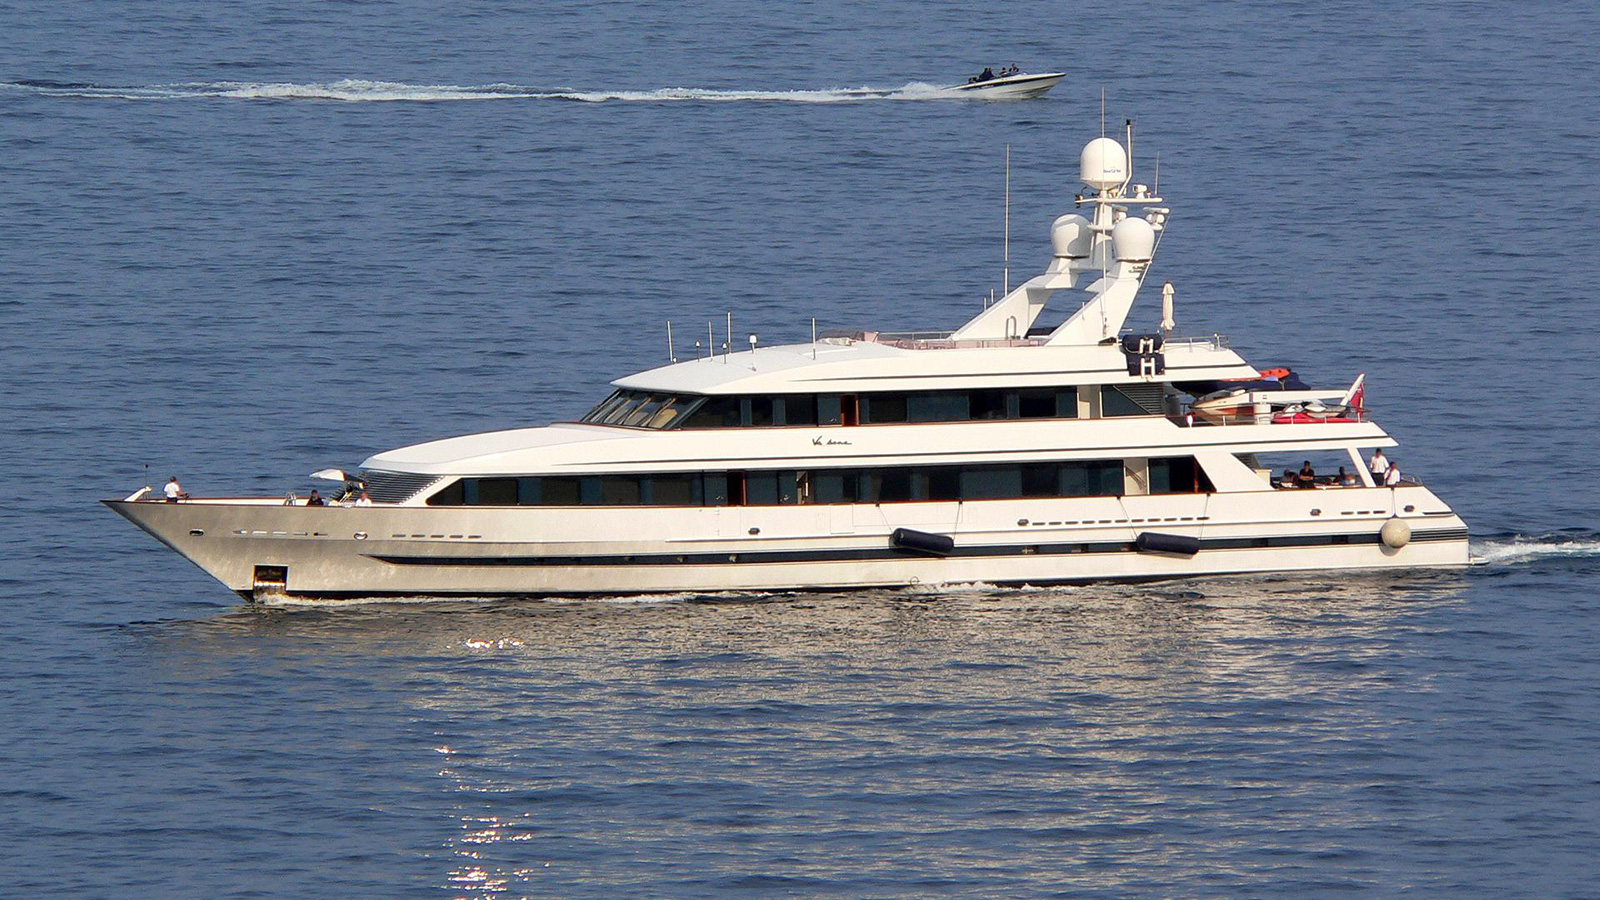 superyachts-owned-by-celebrities-Va-Bene Eric Clapton